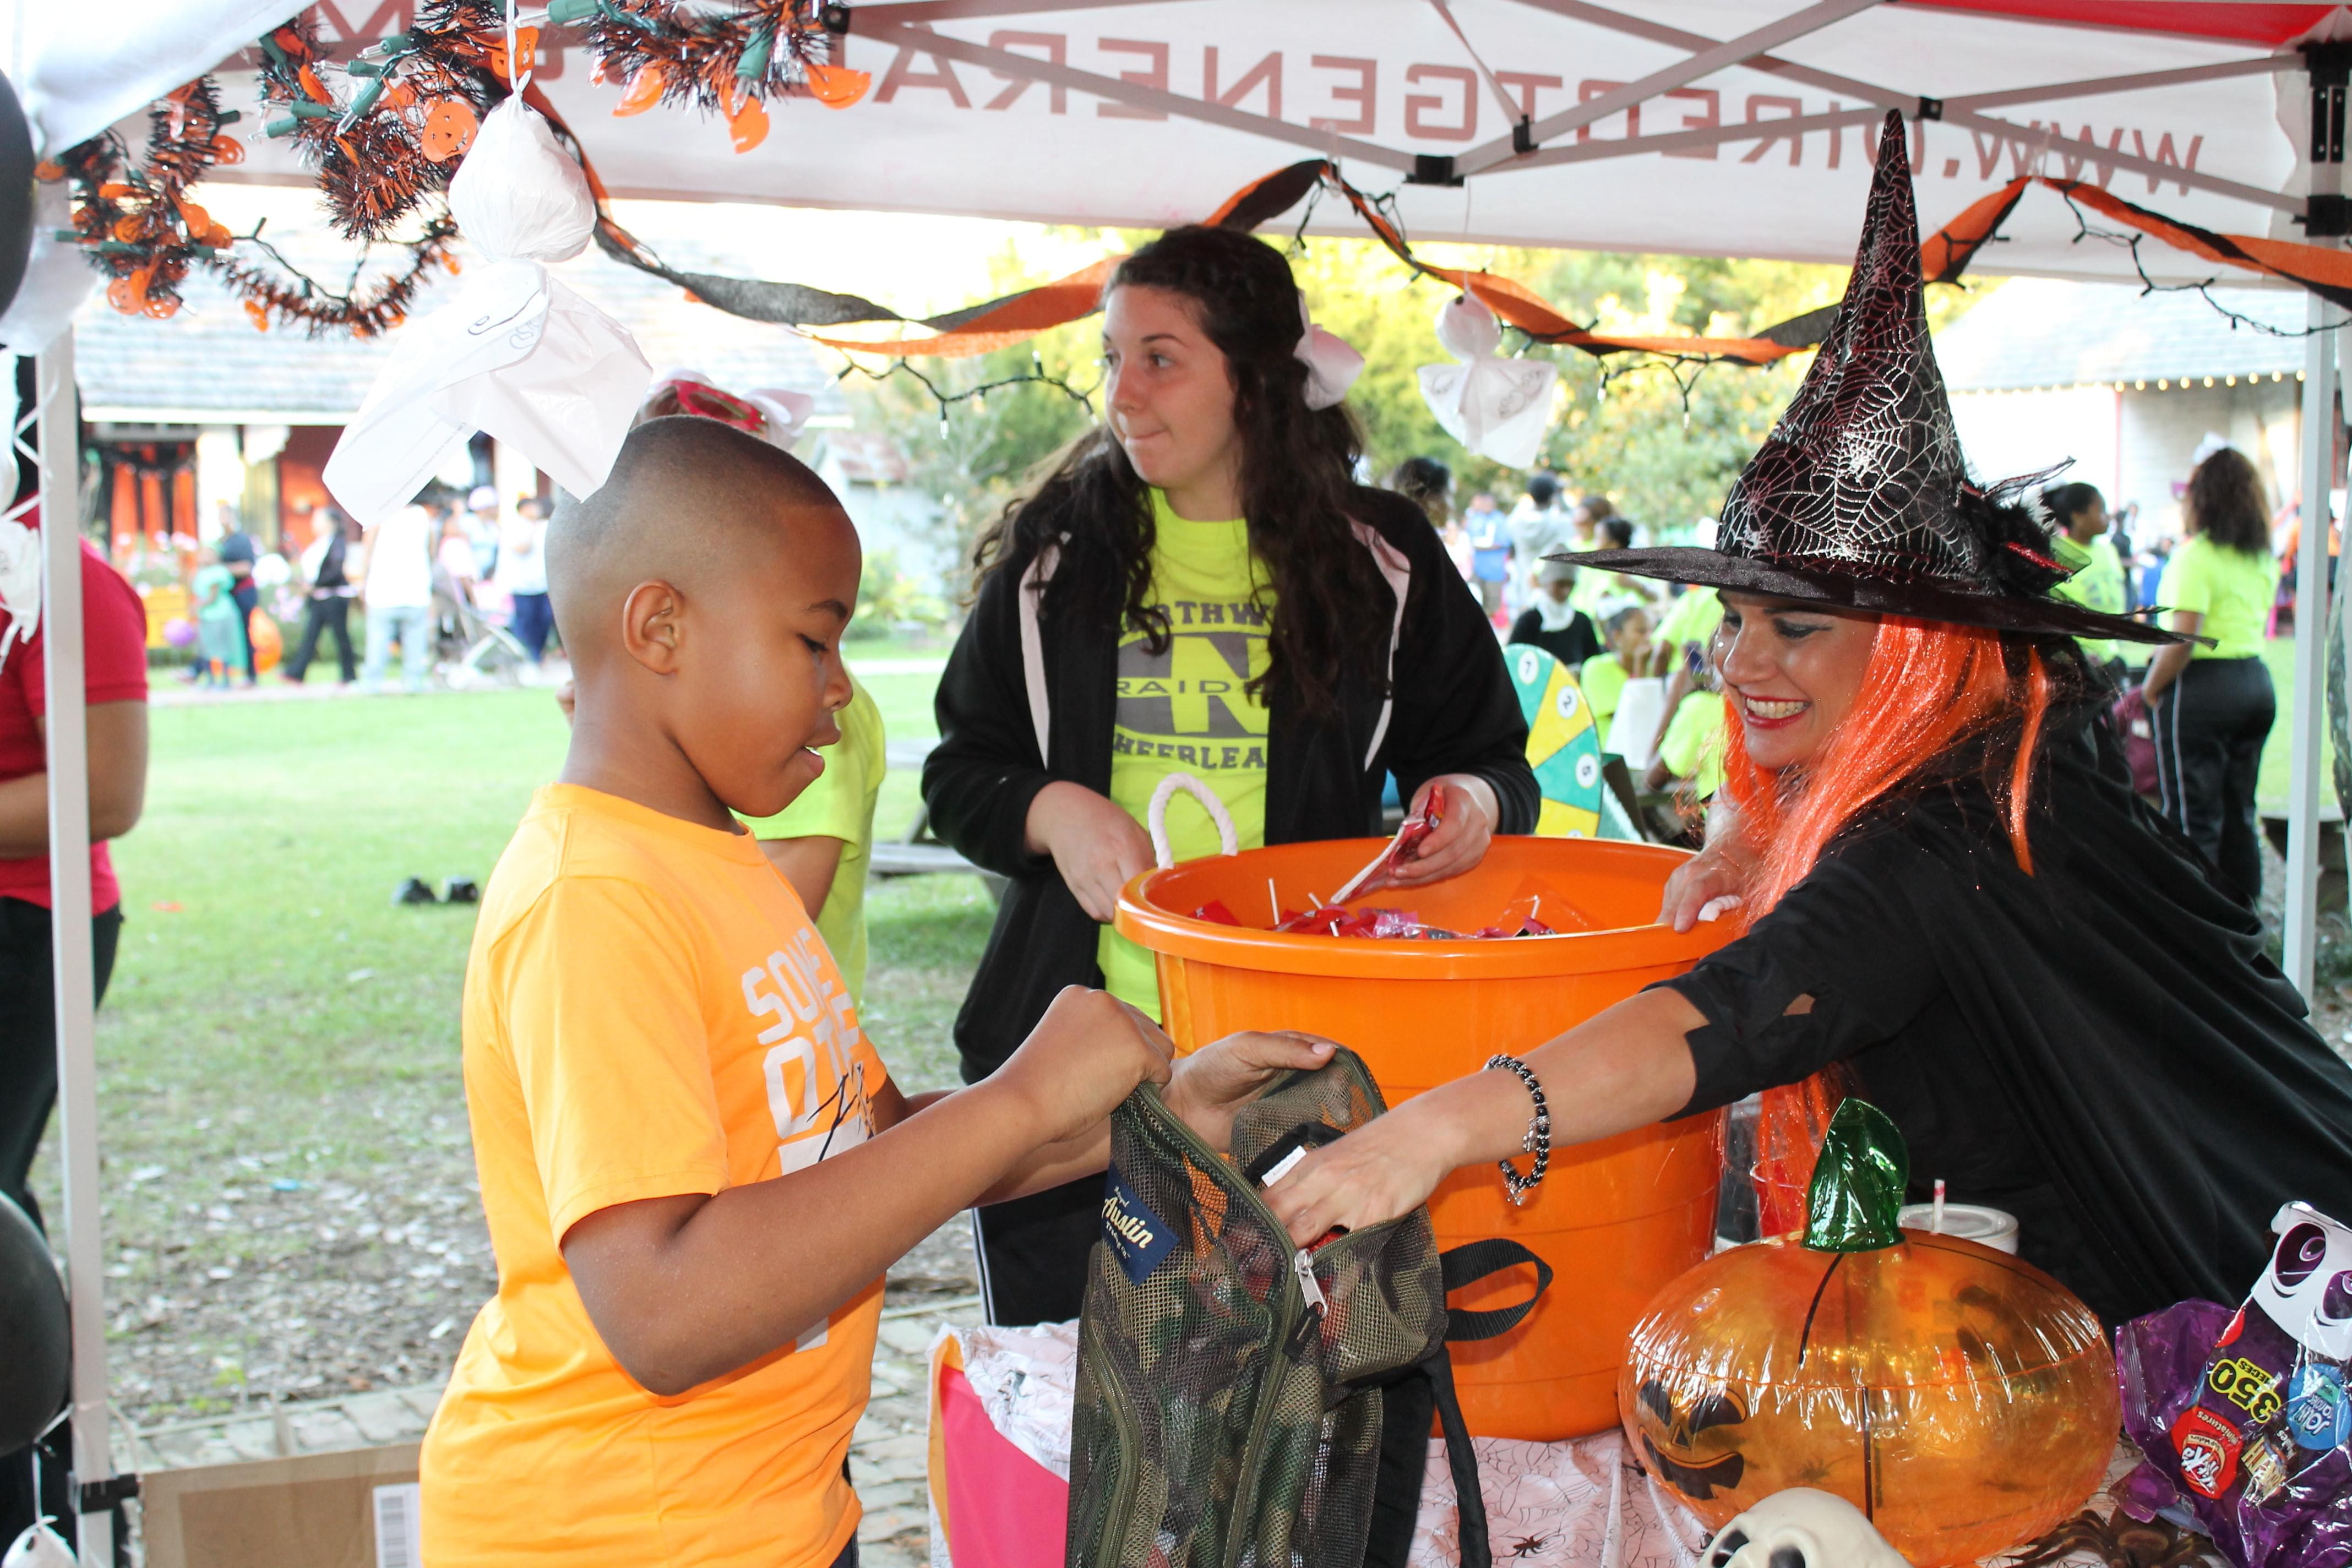 Annual Safe Halloween for Kids at Le Vieux Village in Opelousas